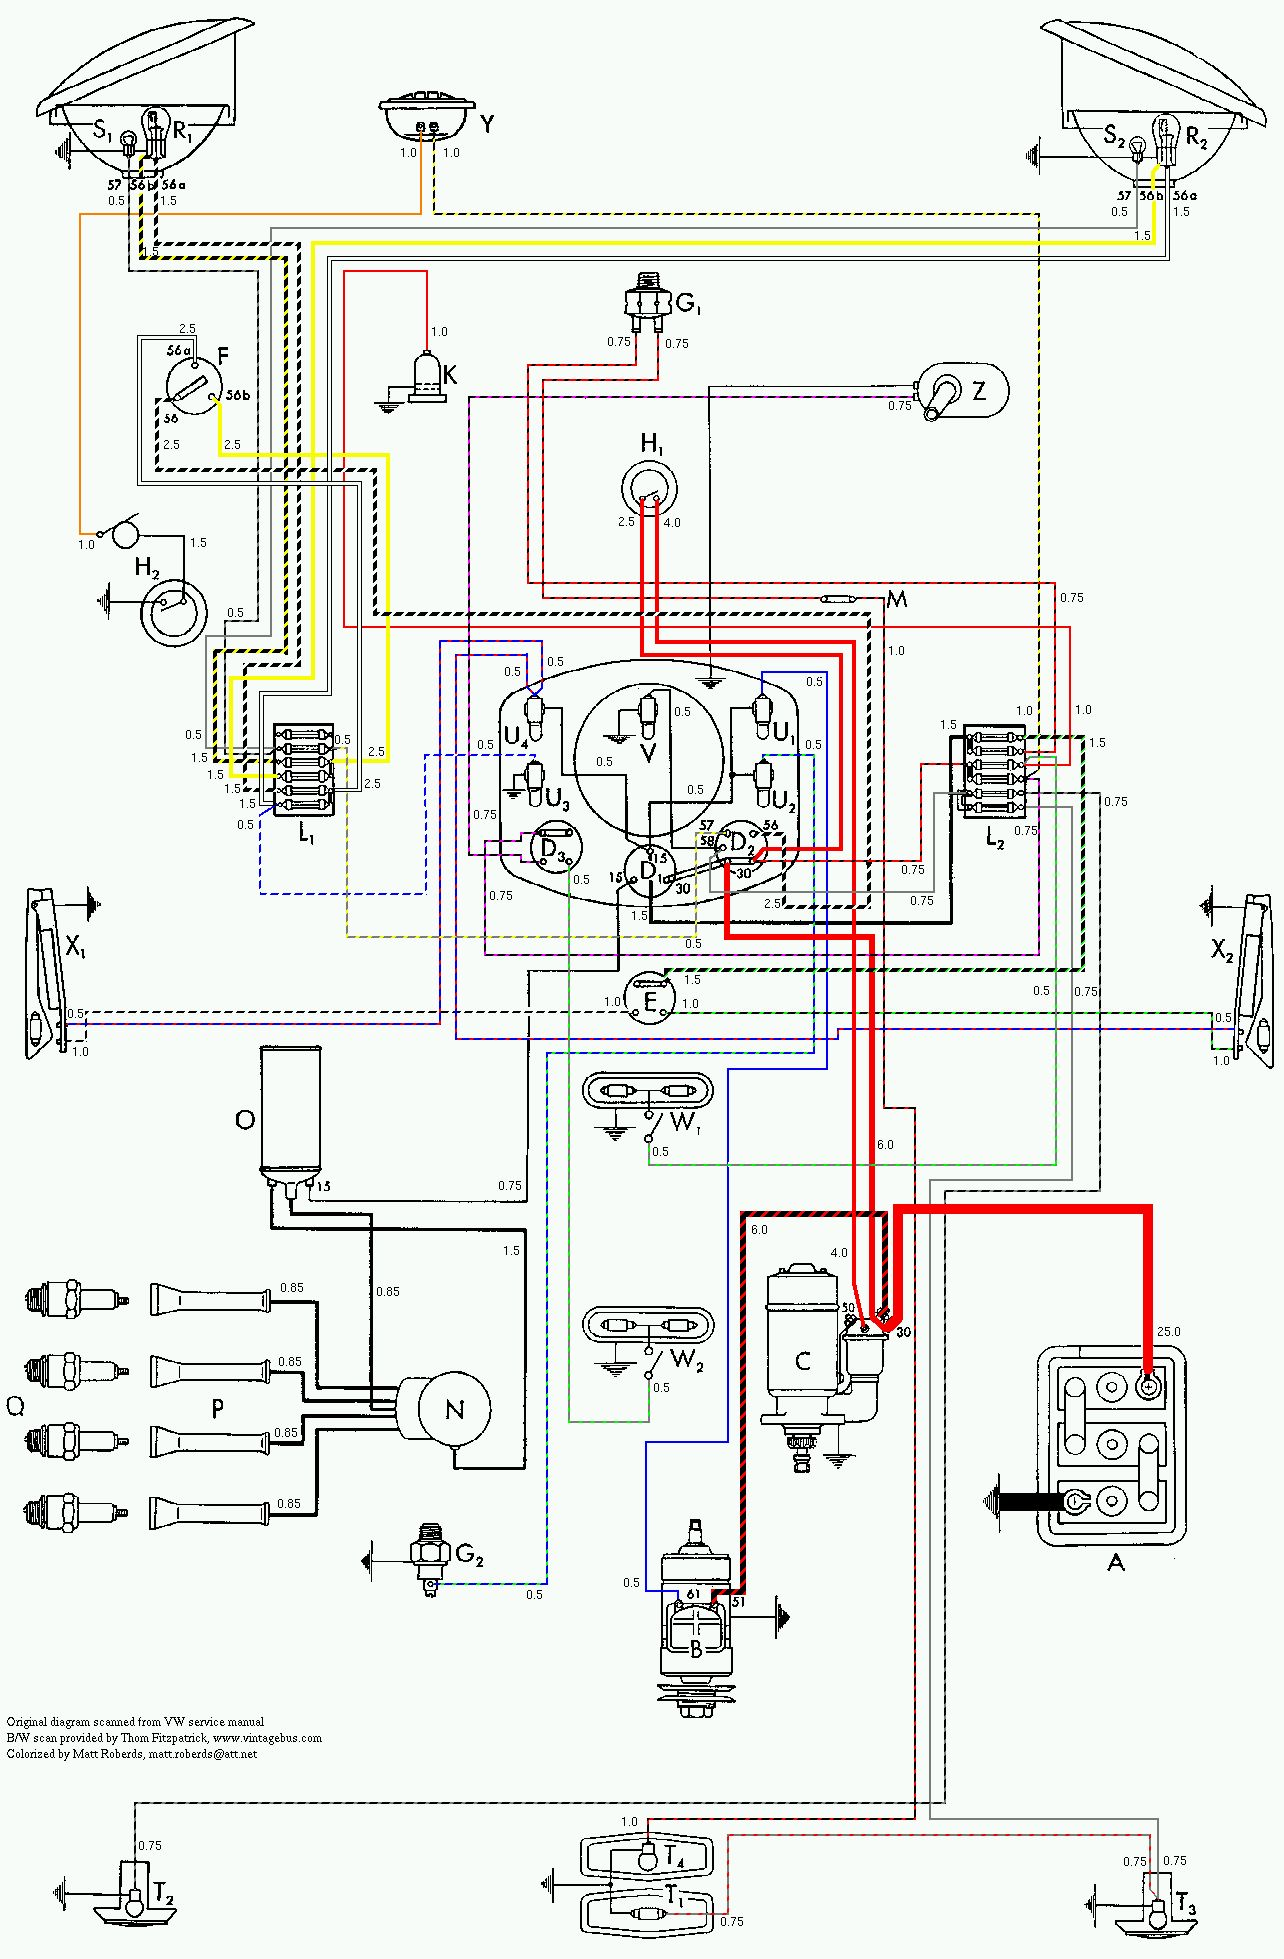 VintageBus.Com - VW Bus (and other) Wiring Diagrams on 1977 jeep cj5 brake line diagram, painless wiring diagram, jeep cj5 dash wiring diagram, 1973 jeep cj5 wiring diagram, 1980 jeep cj5 wiring diagram, 1977 cj7 fuse diagram, 1975 jeep cj5 wiring diagram, 1974 jeep cj5 wiring diagram, 1994 jeep wrangler wiring diagram, 1981 jeep cj5 wiring diagram, 1971 jeep cj5 wiring diagram, 1983 jeep cj5 wiring diagram, 1977 jeep j10 wiring diagram, 1978 jeep cj5 wiring diagram, 1977 jeep cherokee chief wiring diagram, 1967 jeep cj5 wiring diagram, 1955 jeep cj5 wiring diagram, jeep cj7 fuse box diagram, 1976 jeep wiring diagram, cj5 fuel gauge wiring diagram,